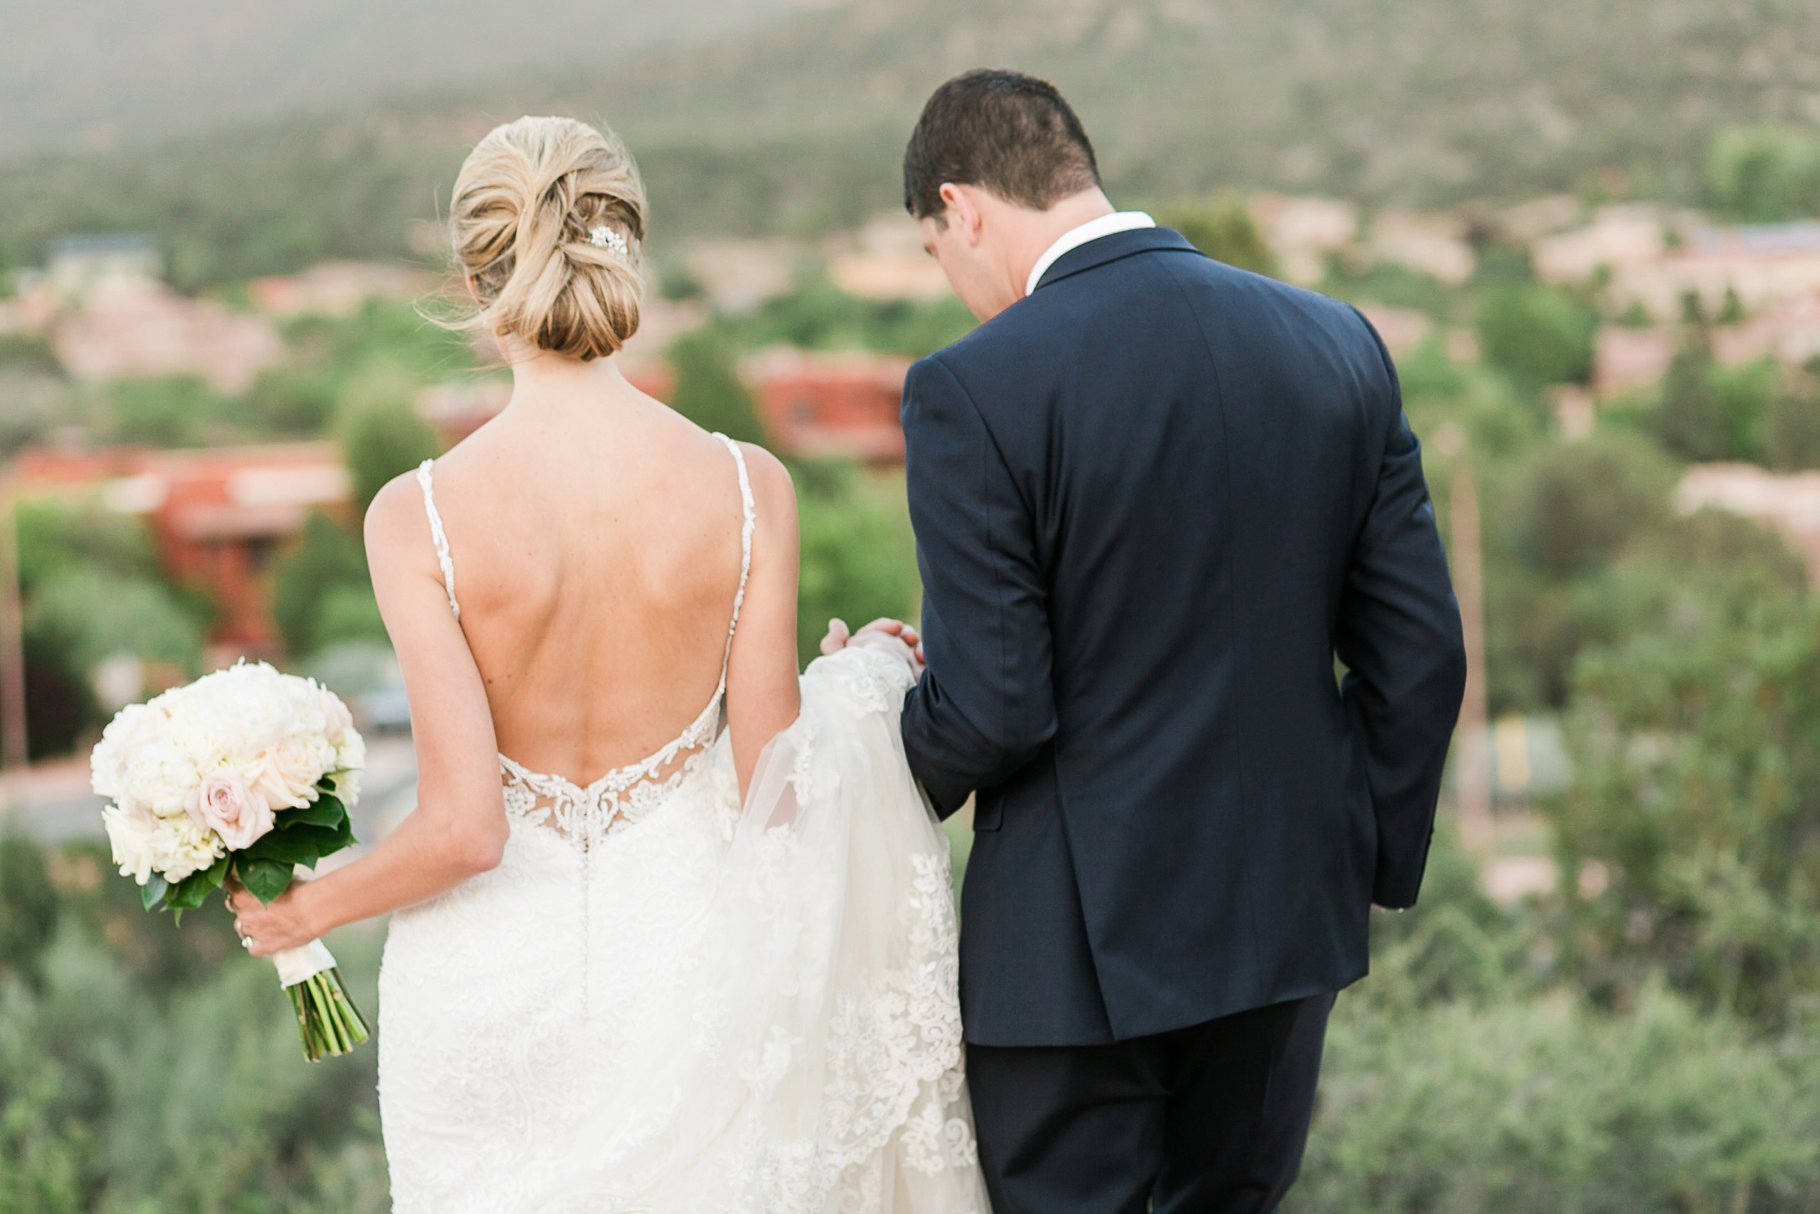 sedona wedding-121_GRETCHEN WAKEMAN PHOTOGRAPHY.jpg